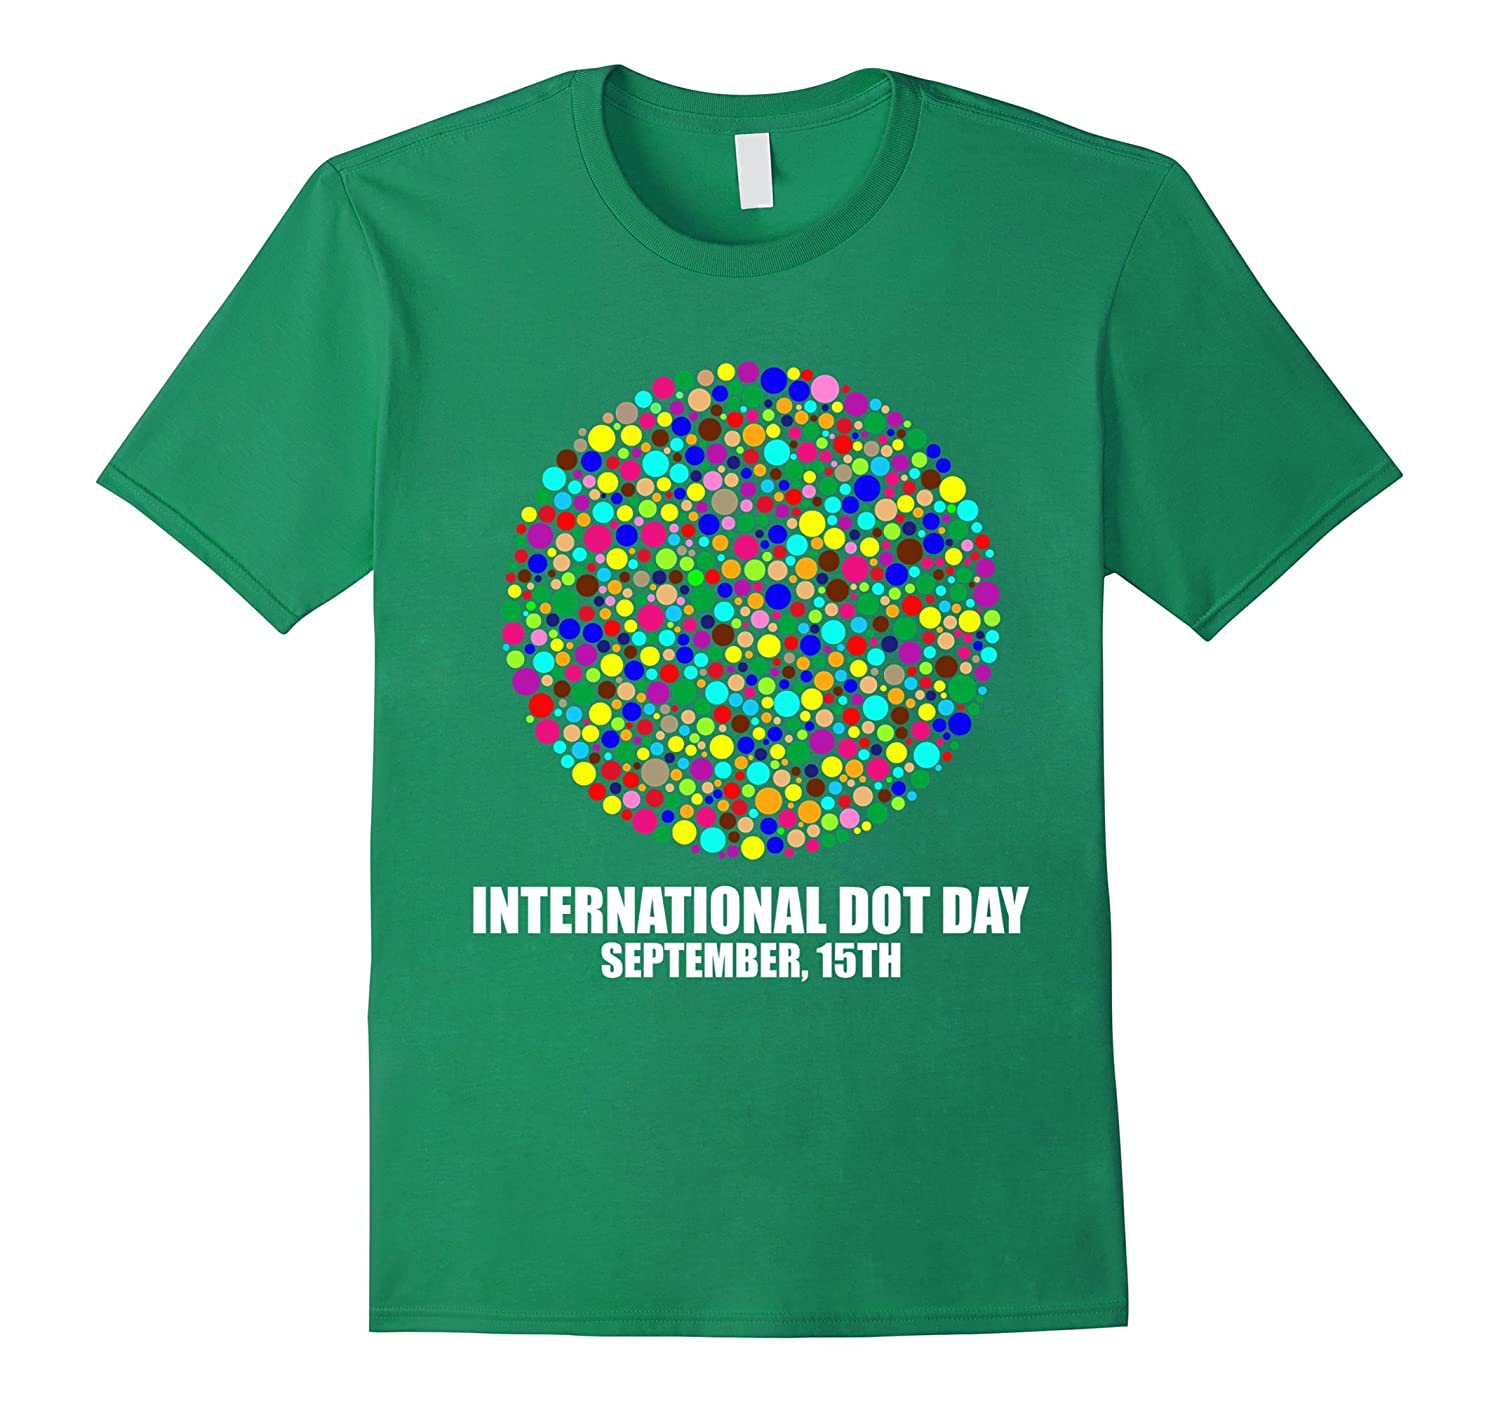 International Dot Day September 15th 2017 T-shirt-CL